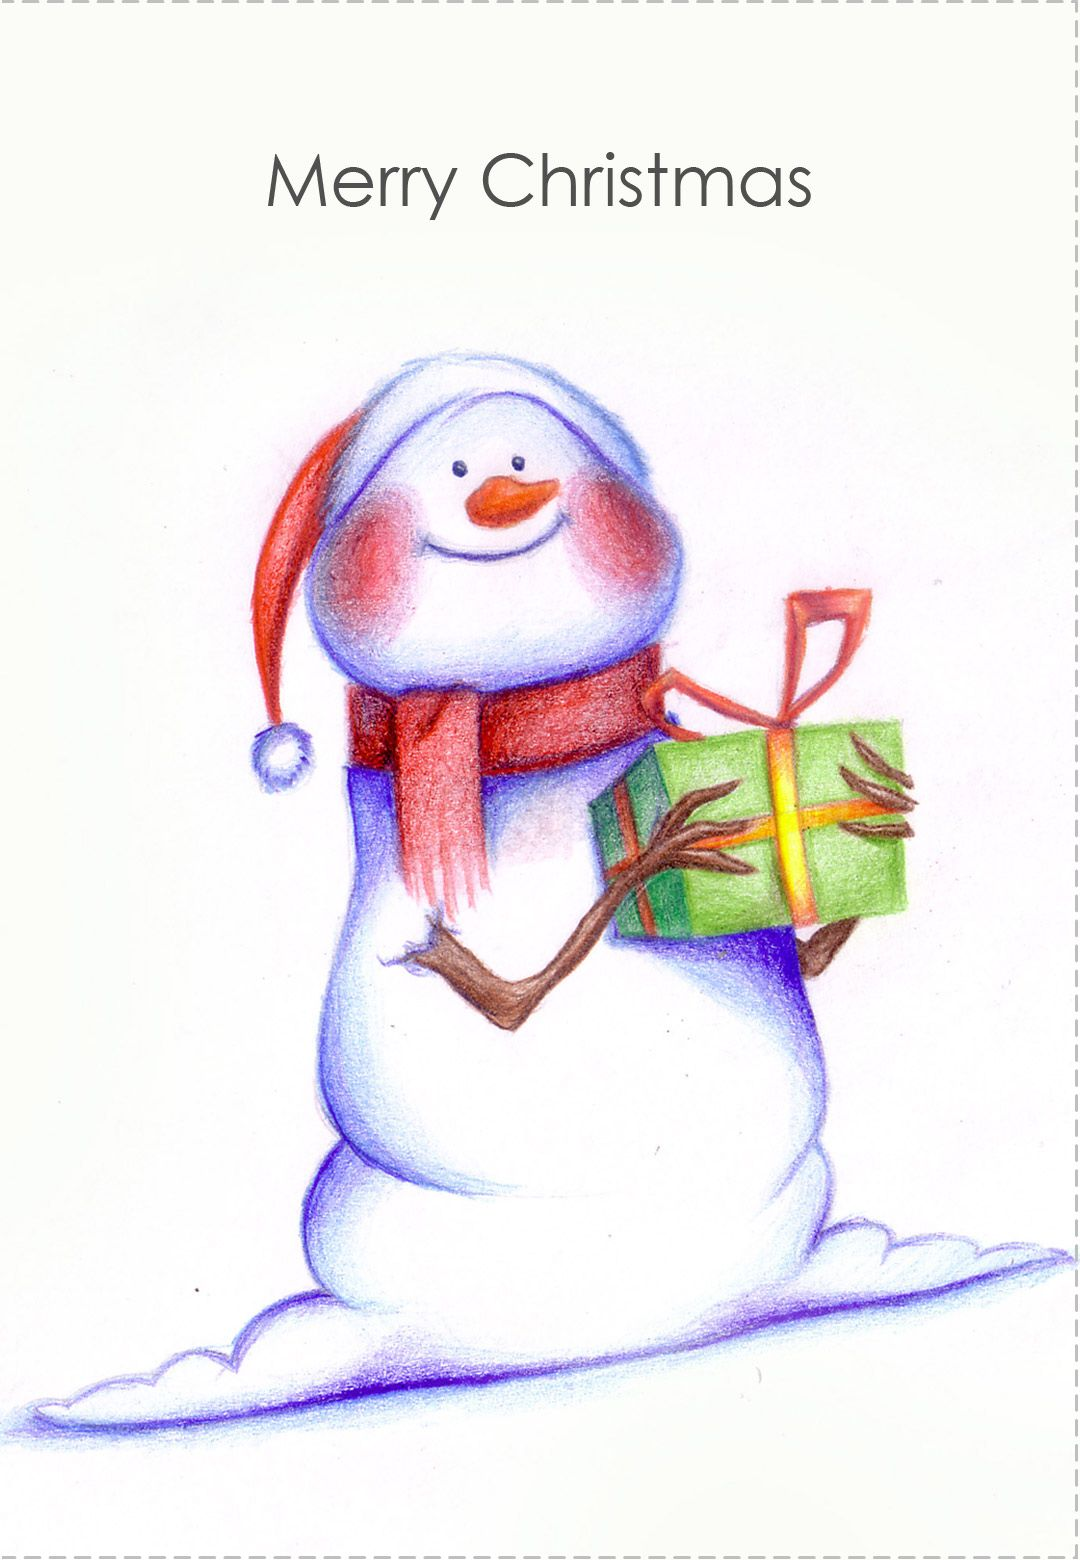 Free Printable Christmas Snowman Greeting Cardhttp://www.greetingsisland.com /prints/PrintPosting.aspx?cardu003dChristmas Snowmanu003d1143